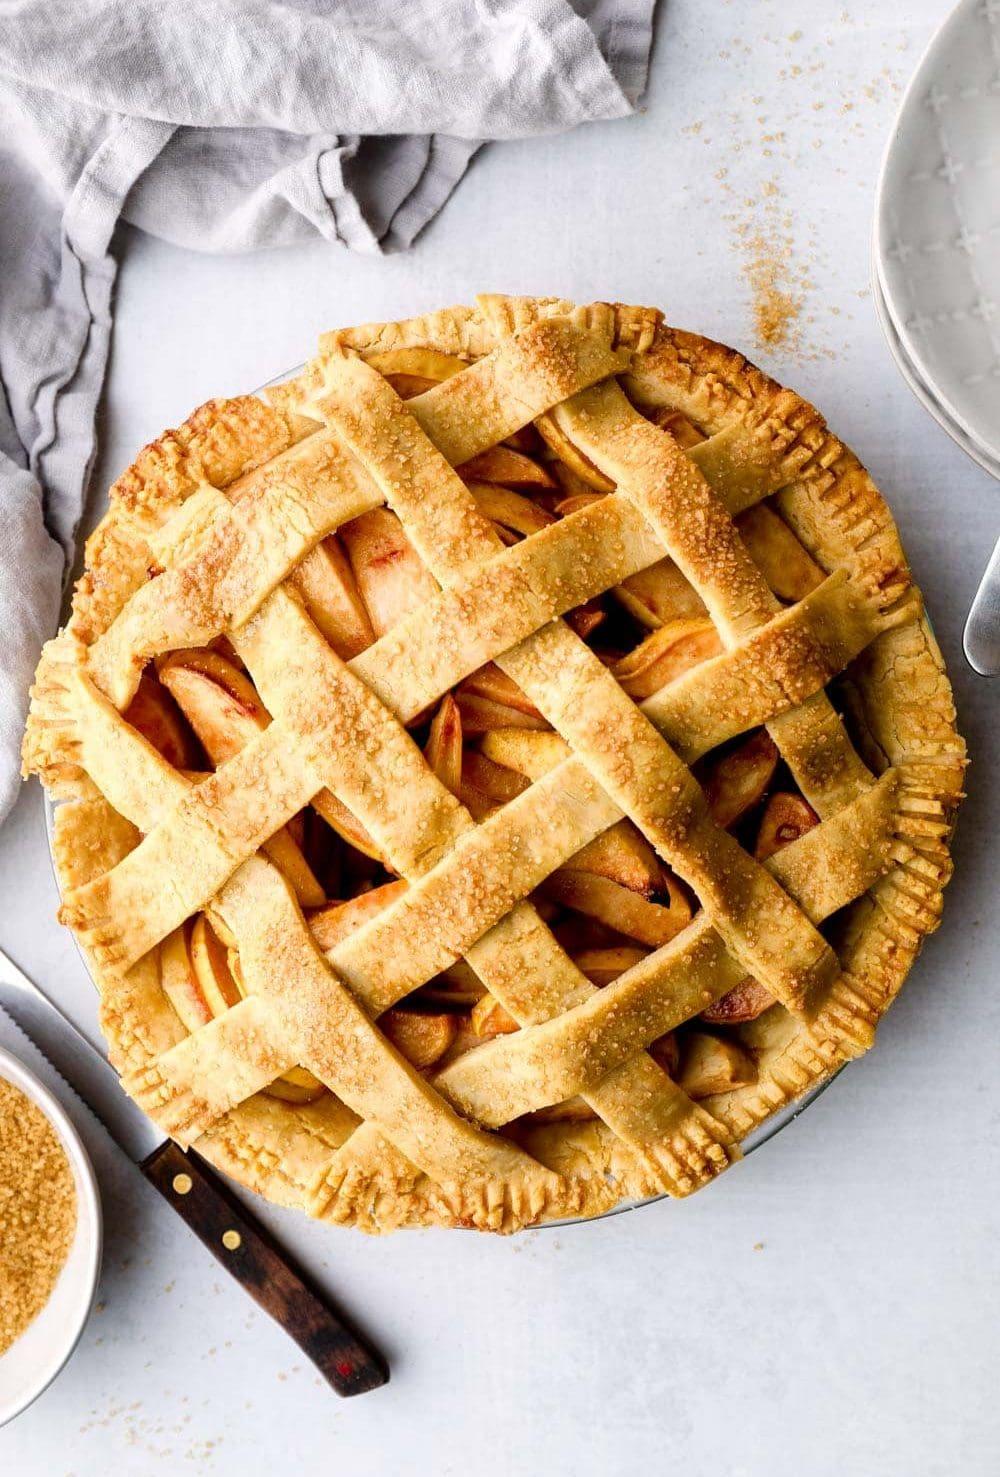 Gluten Free Apple Pie with lattice crust.